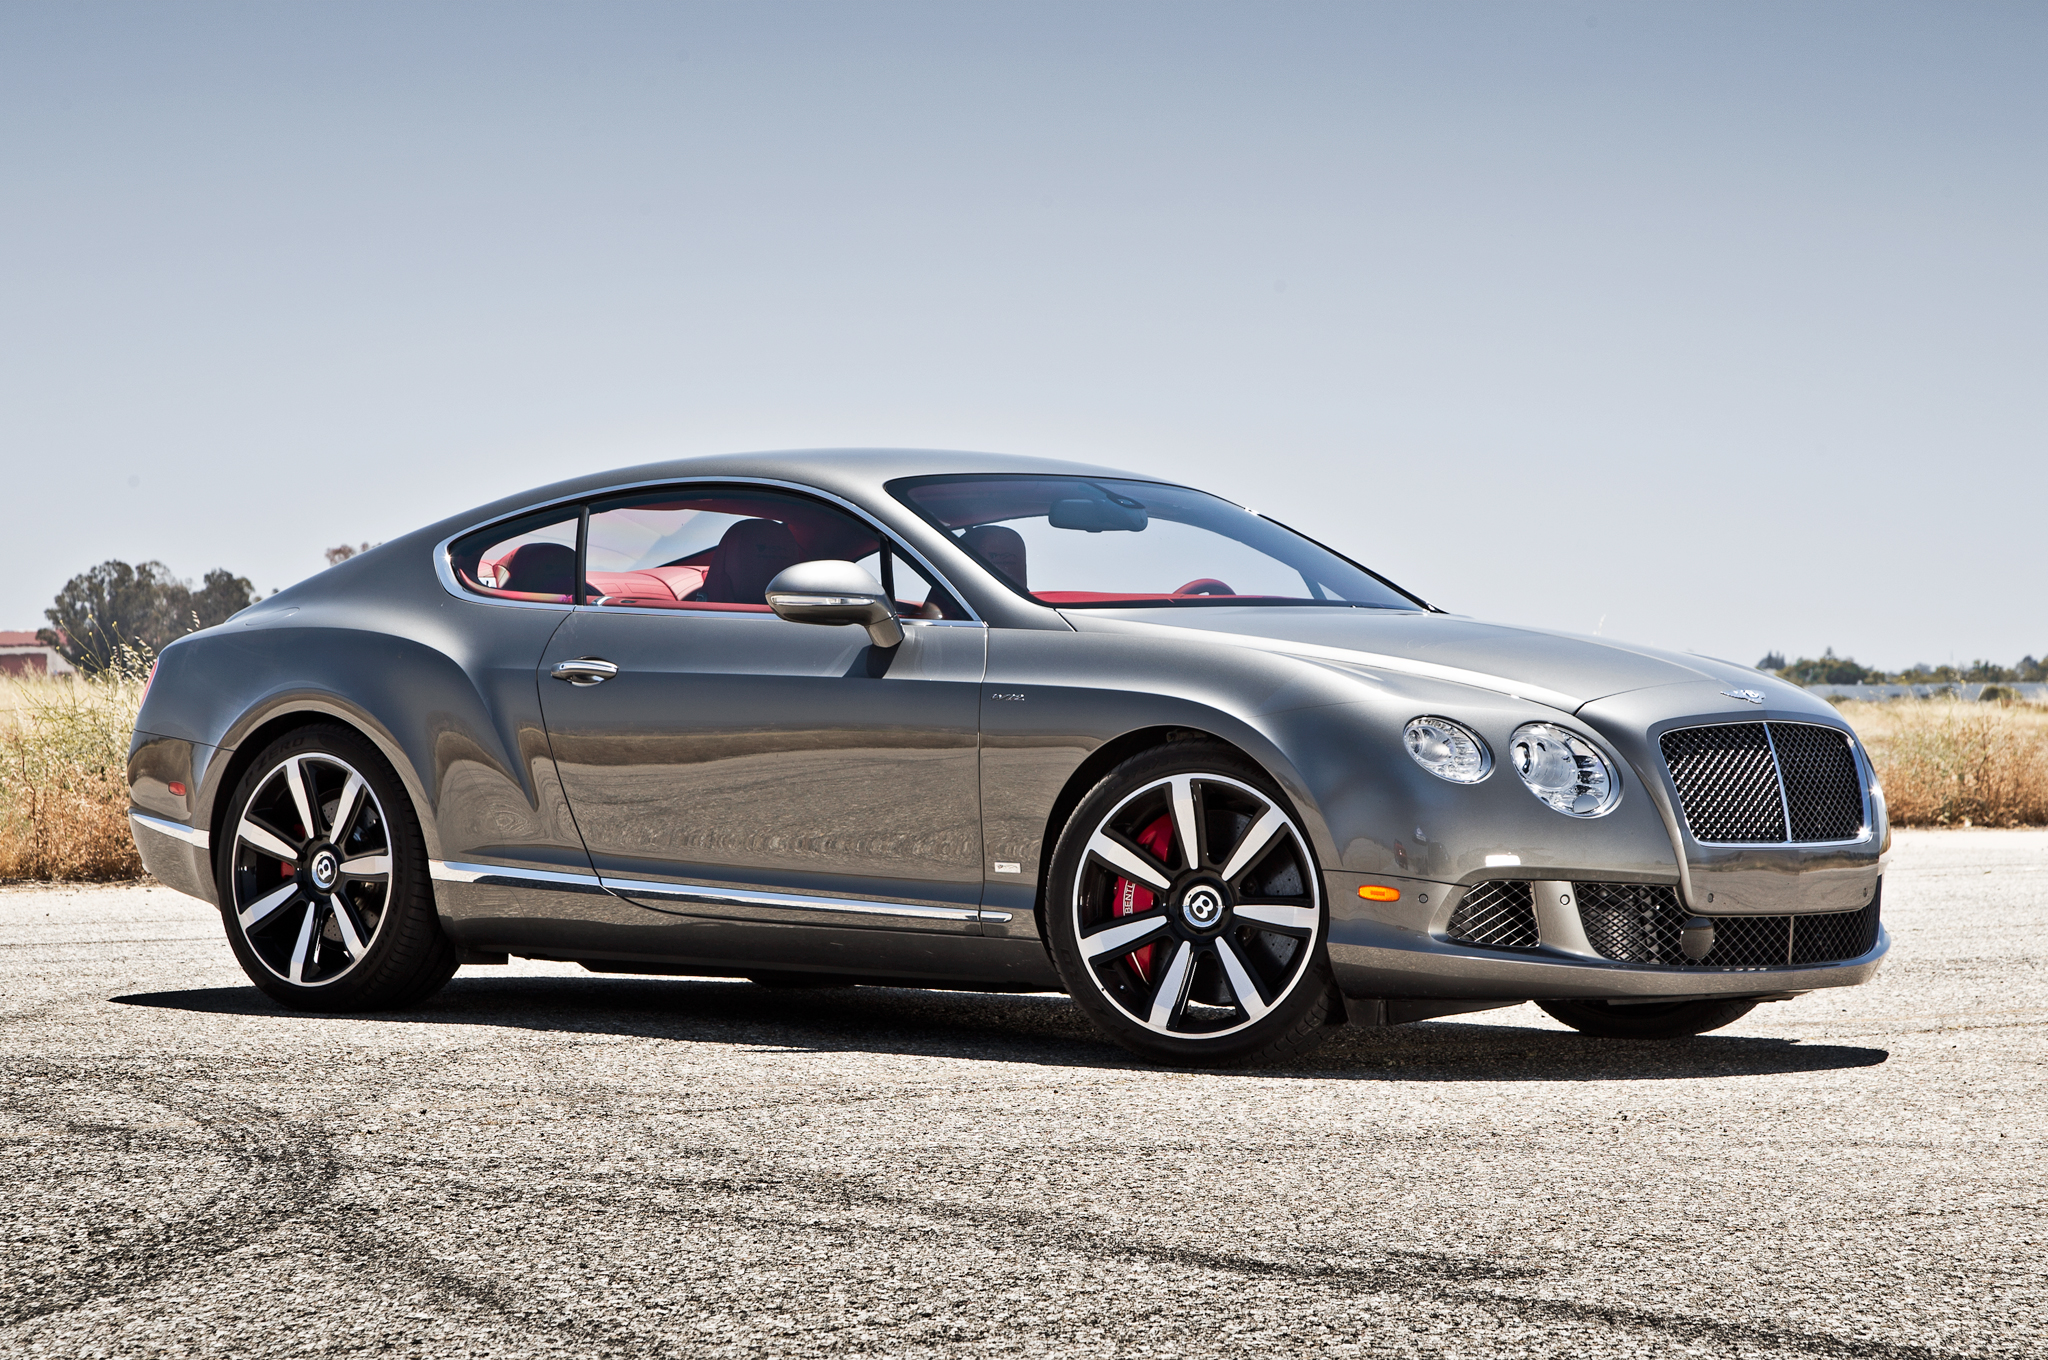 bentley continental gt speed - 2404px image #1